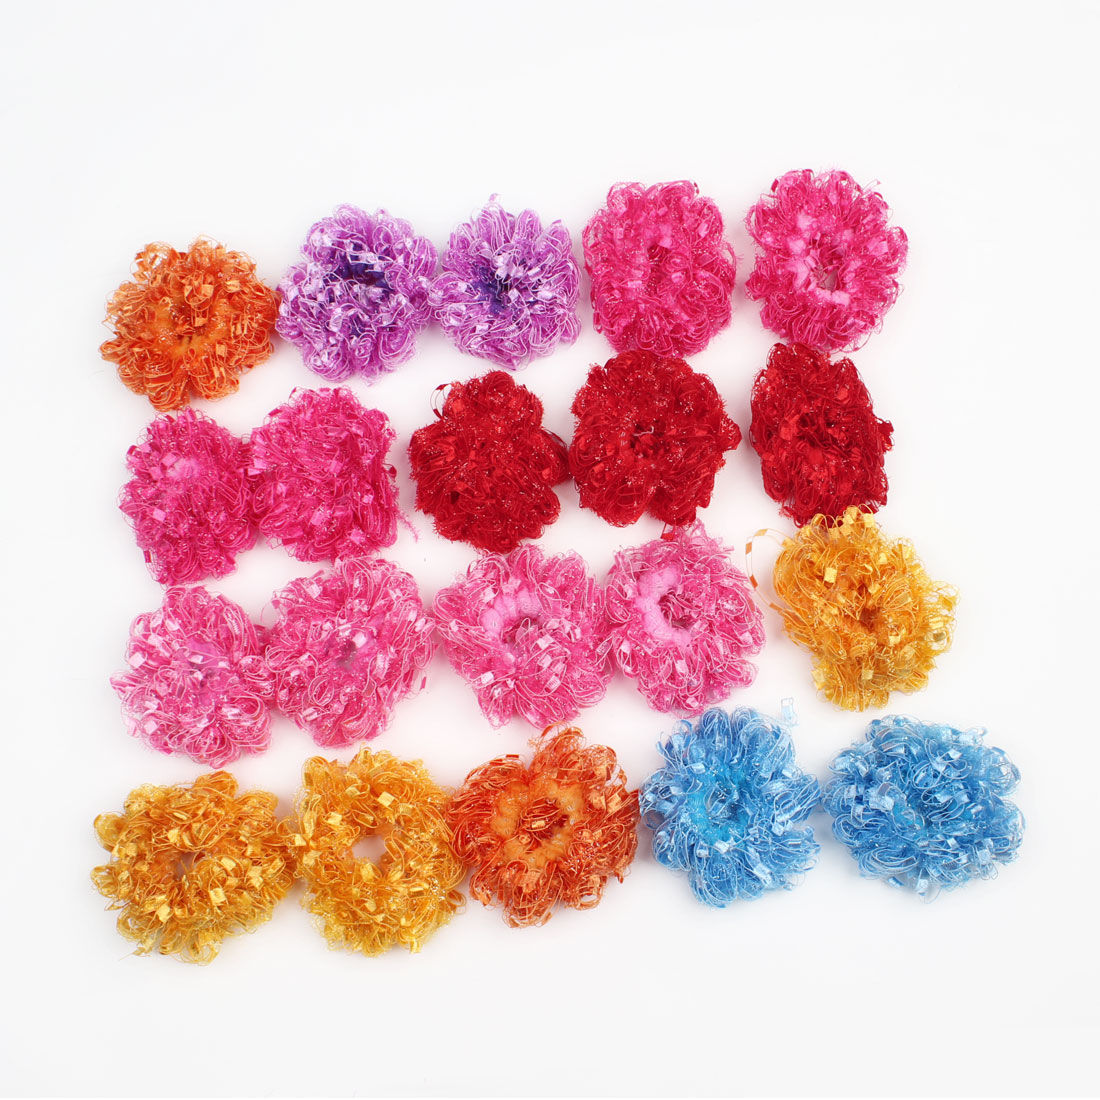 20 Pcs Colorful Ruffle Flowers Elastic Ponytail Holder Hair Tie for Ladies